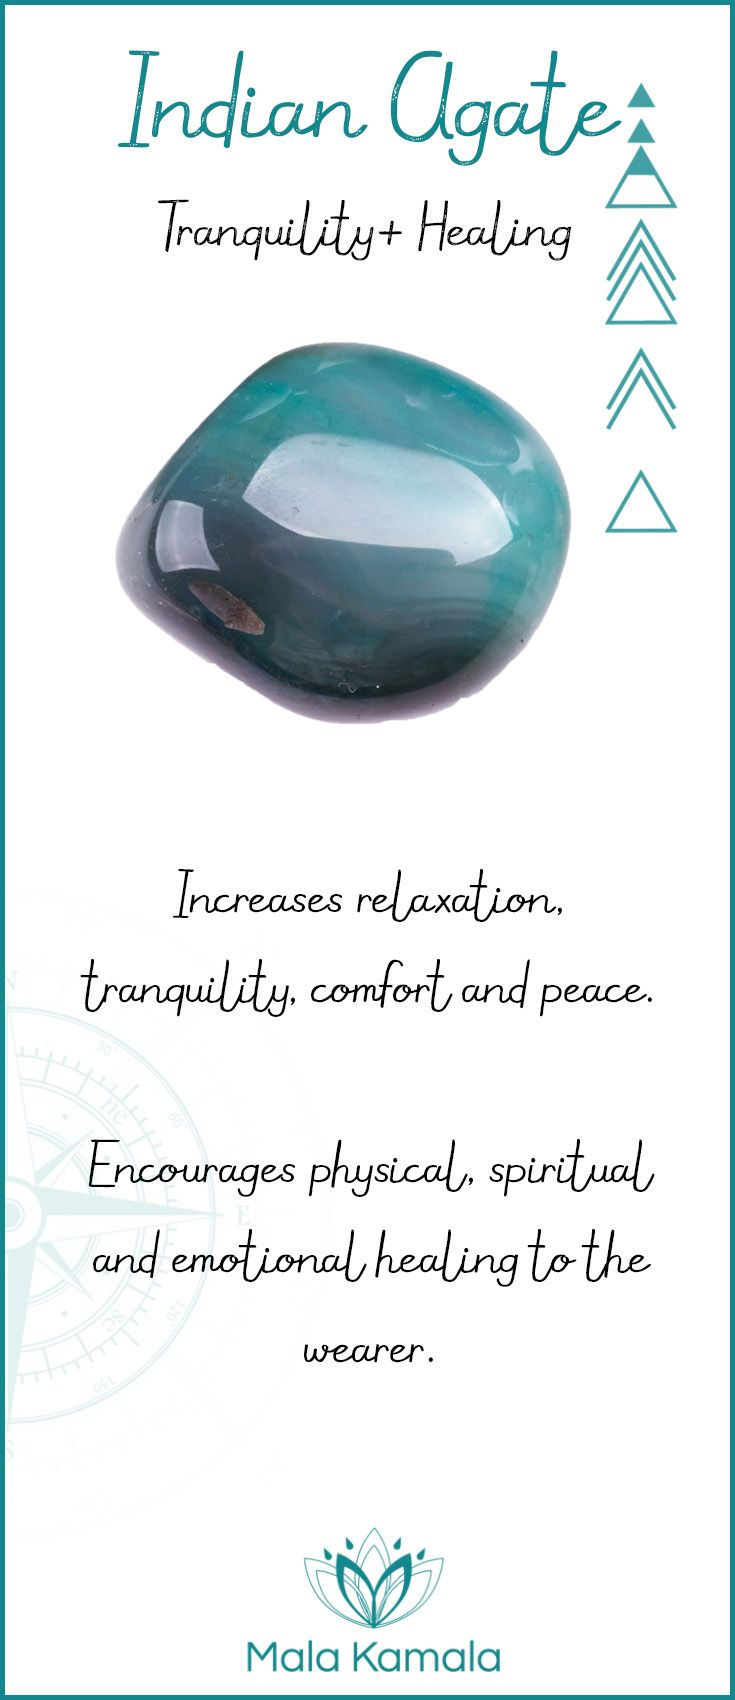 What is the meaning and crystal and chakra healing properties of indian agate? A stone for tranquility and healing.